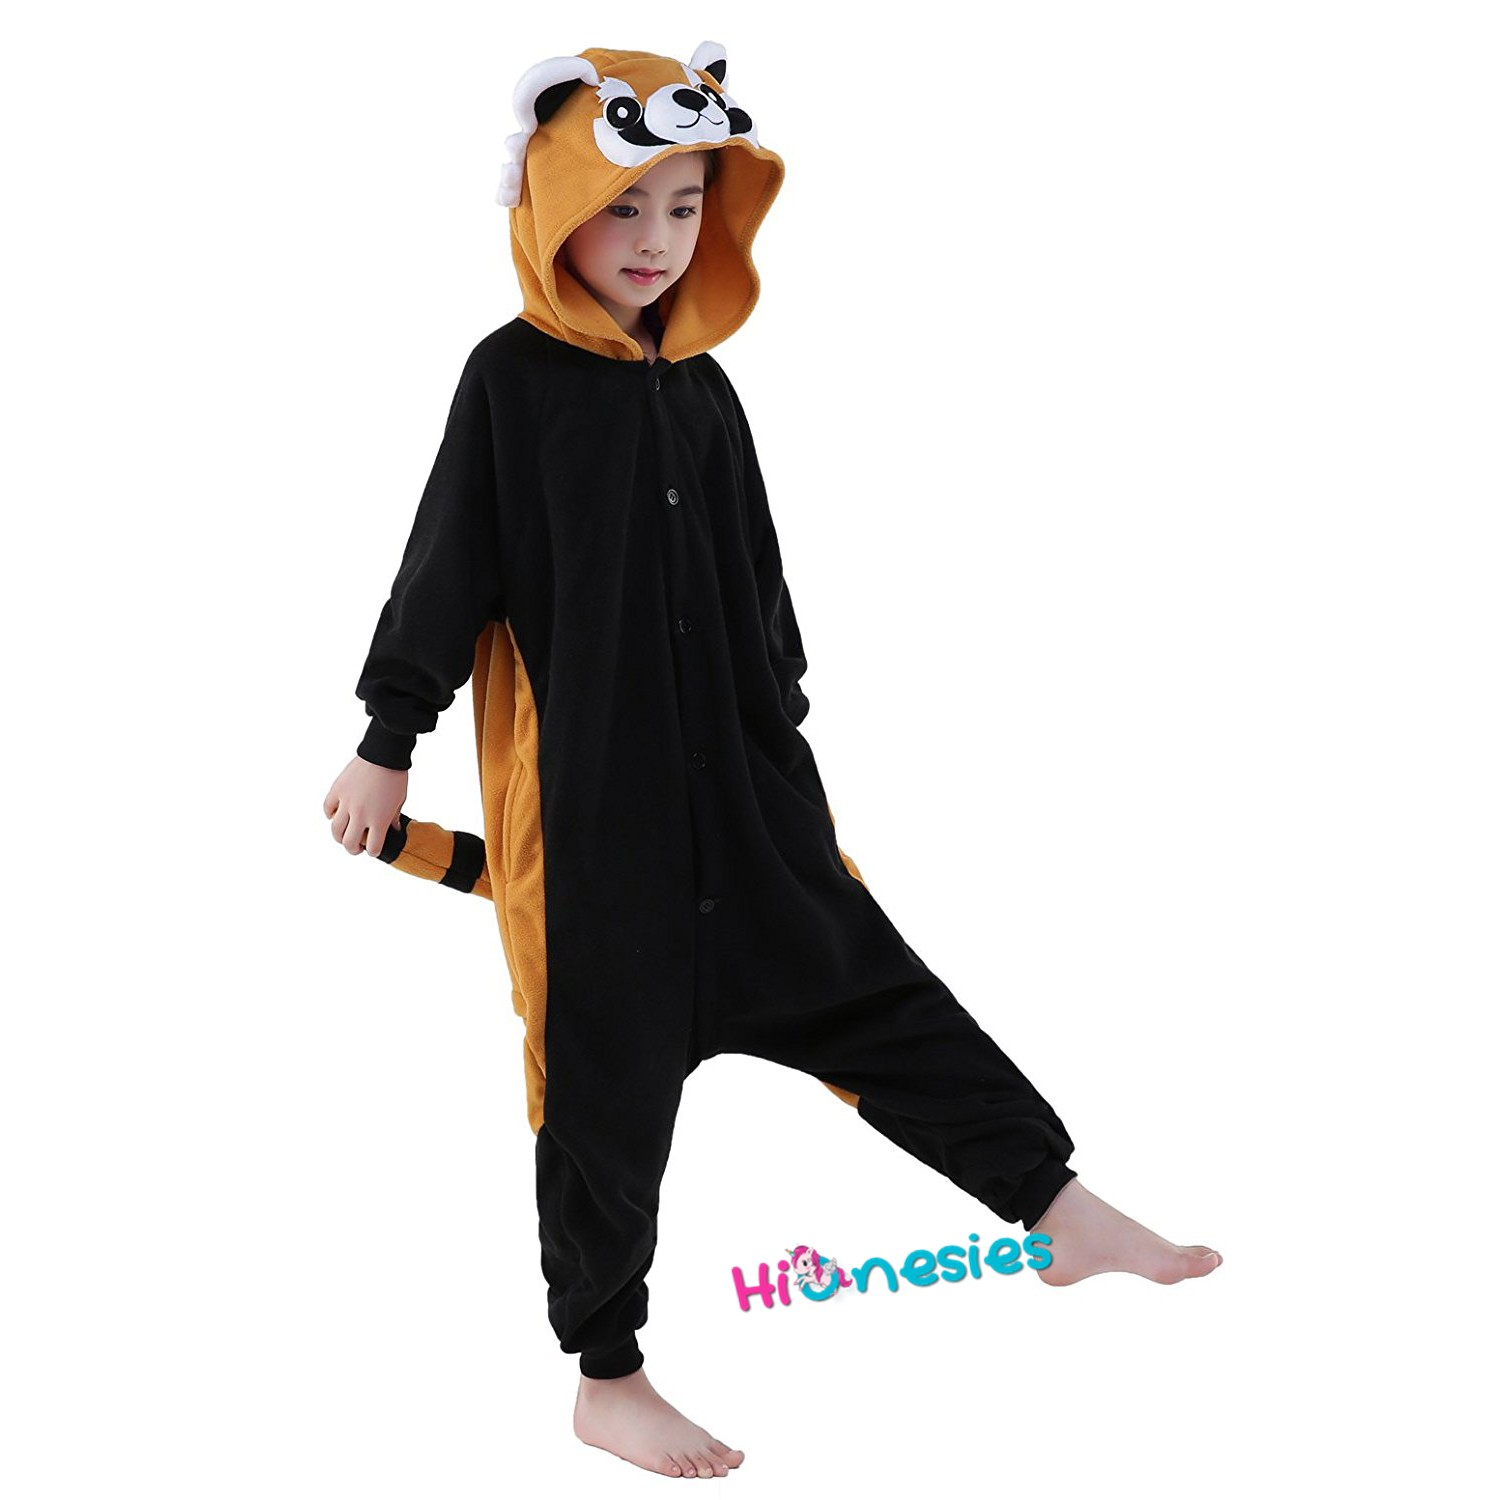 Image of: Amazon Loading The Panda Haus Red Panda Onesie For Kid Animal Kigurumi Pajama Party Costumes